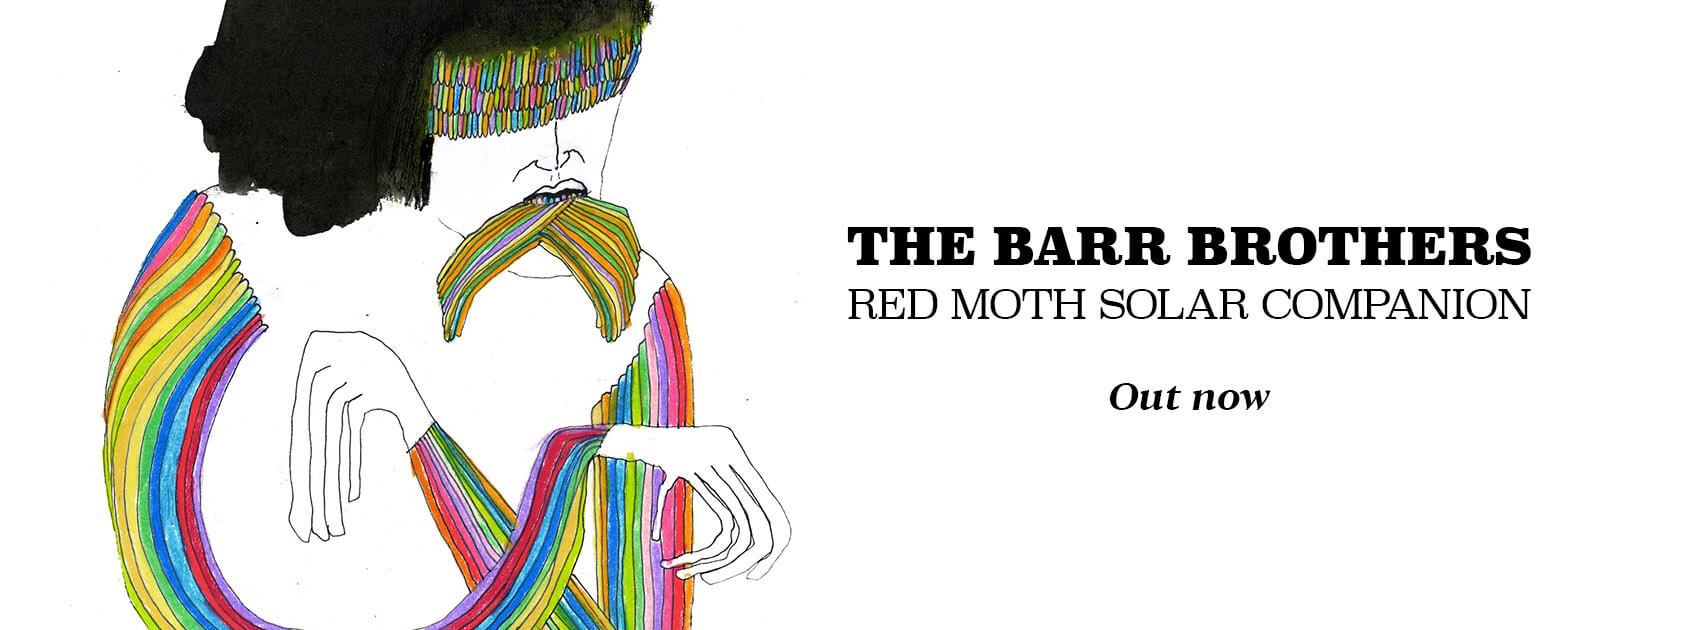 BarrBros-RedMoth-SCRWebsite-EN